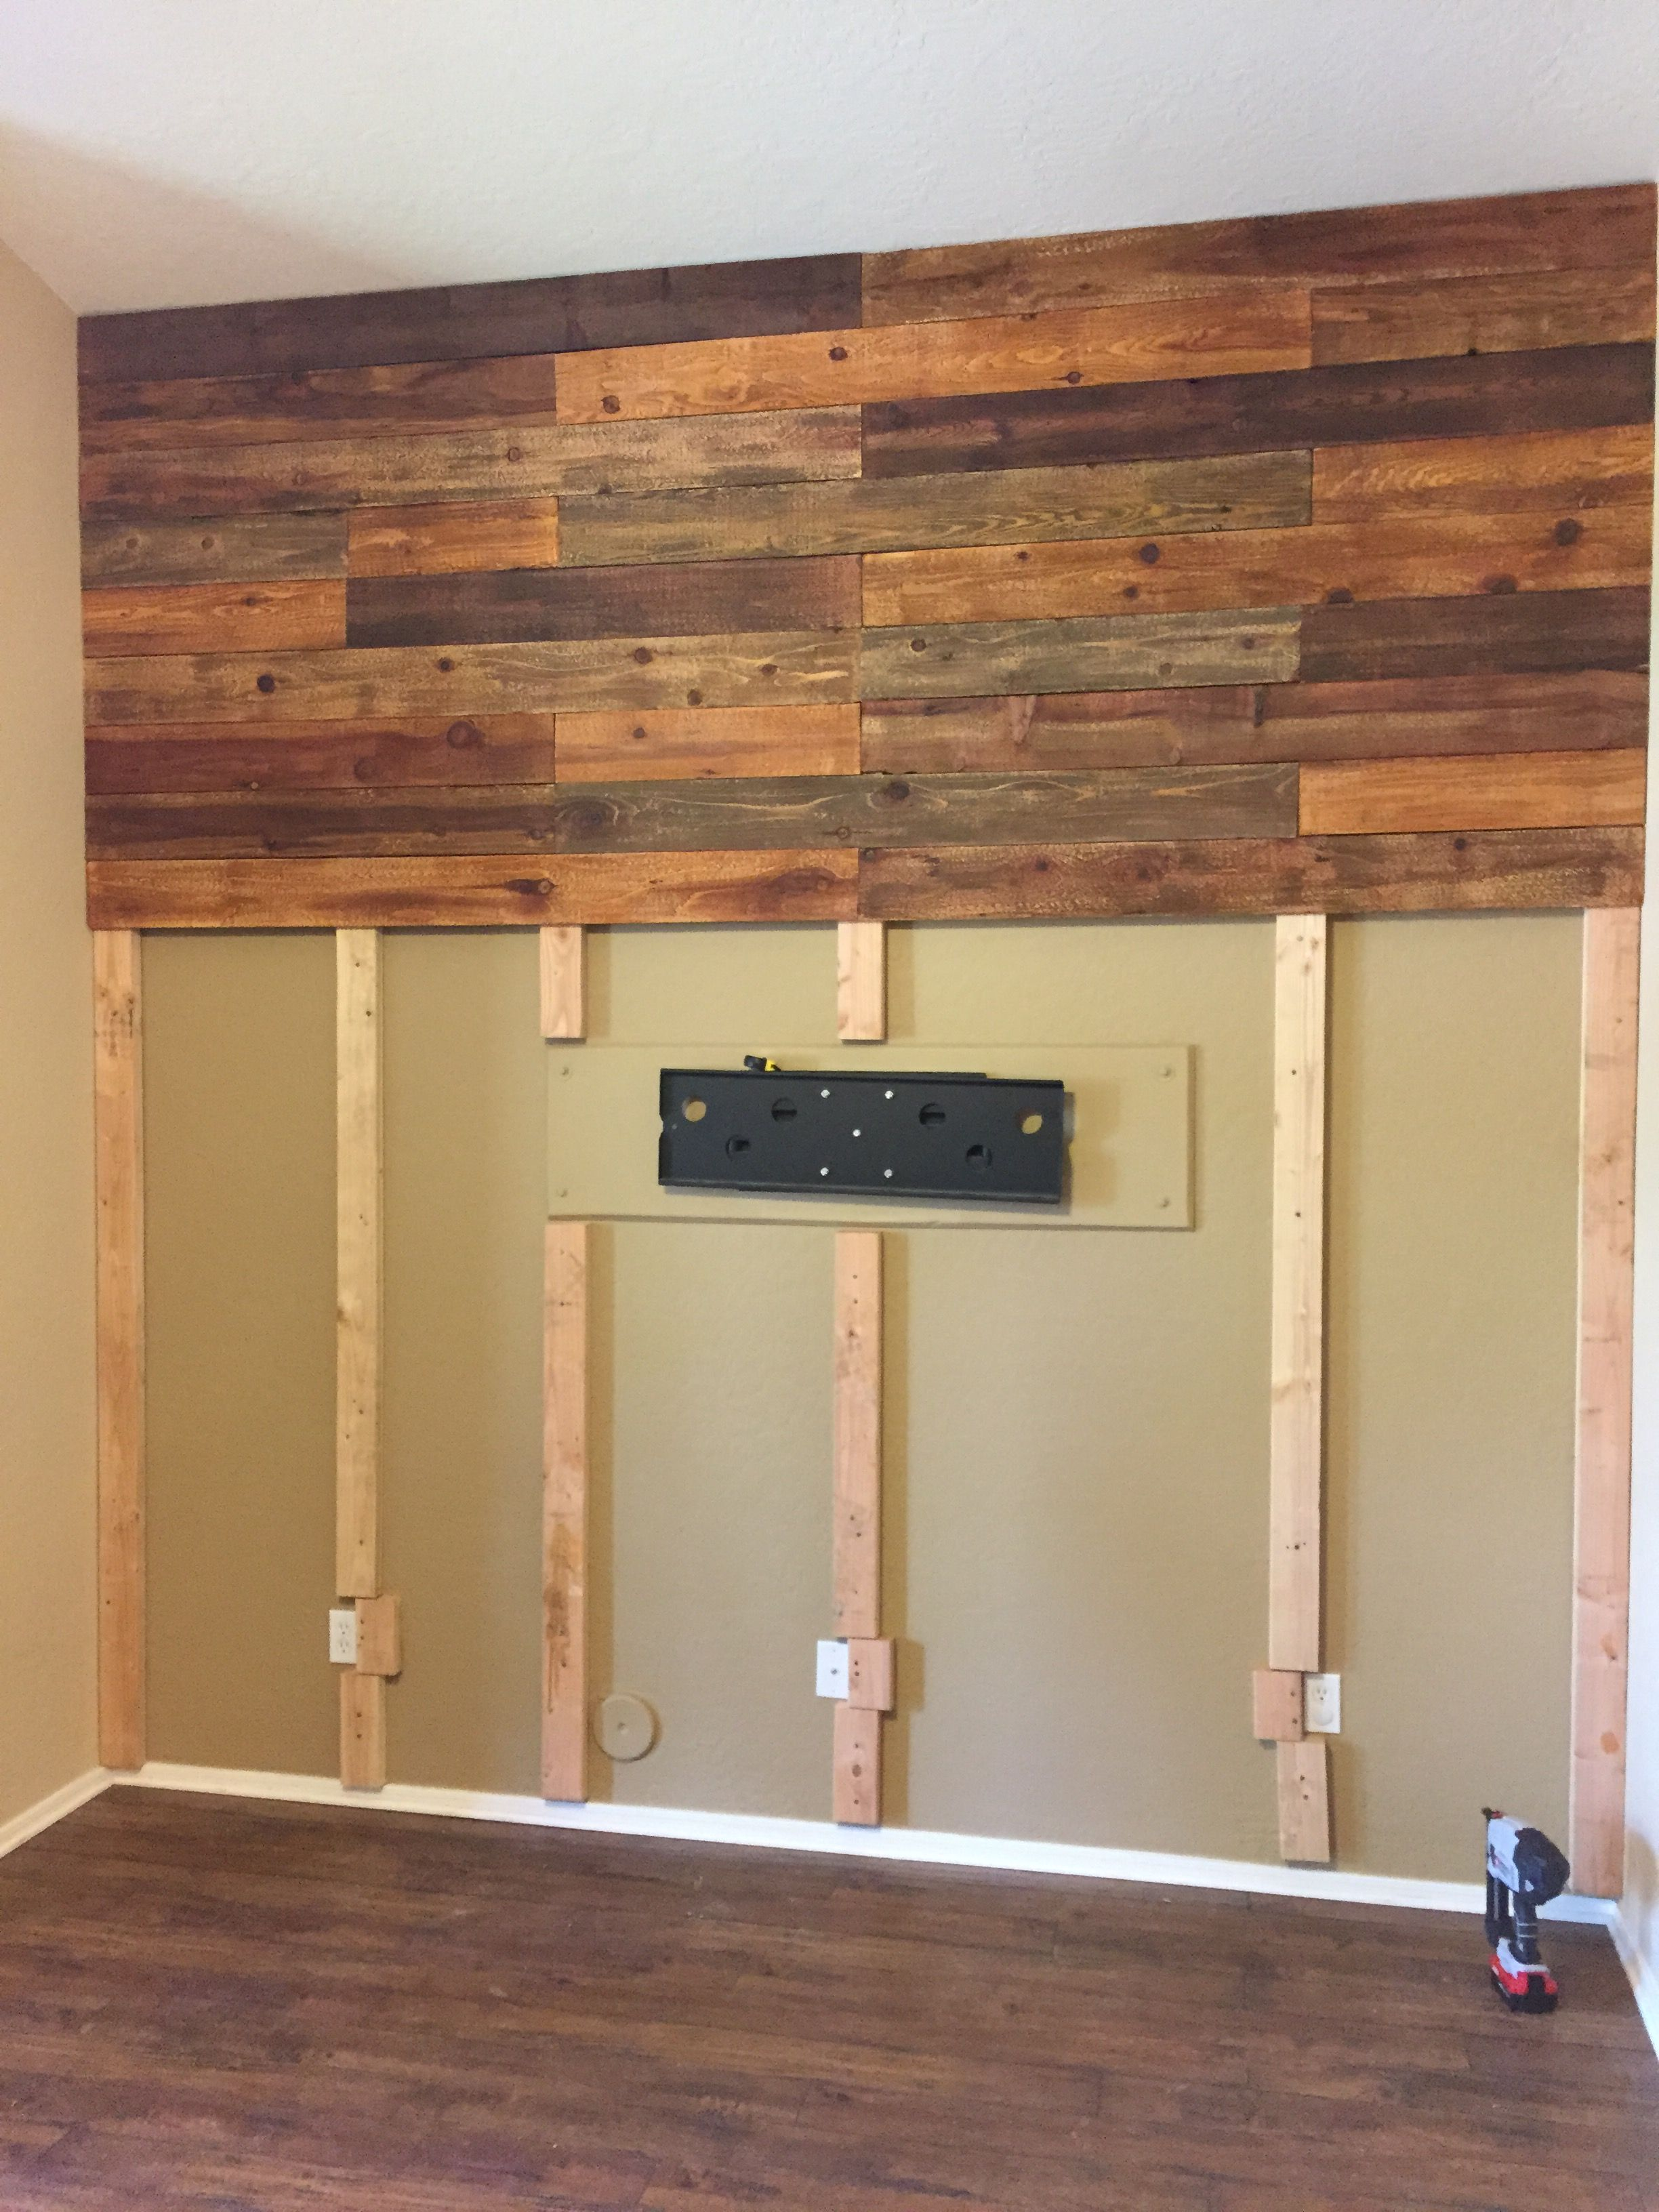 Pin By Anthony Ross On Pared Rustic Wood Wall Decor Wood Walls Living Room Rustic Wood Walls #wood #wall #designs #for #living #room